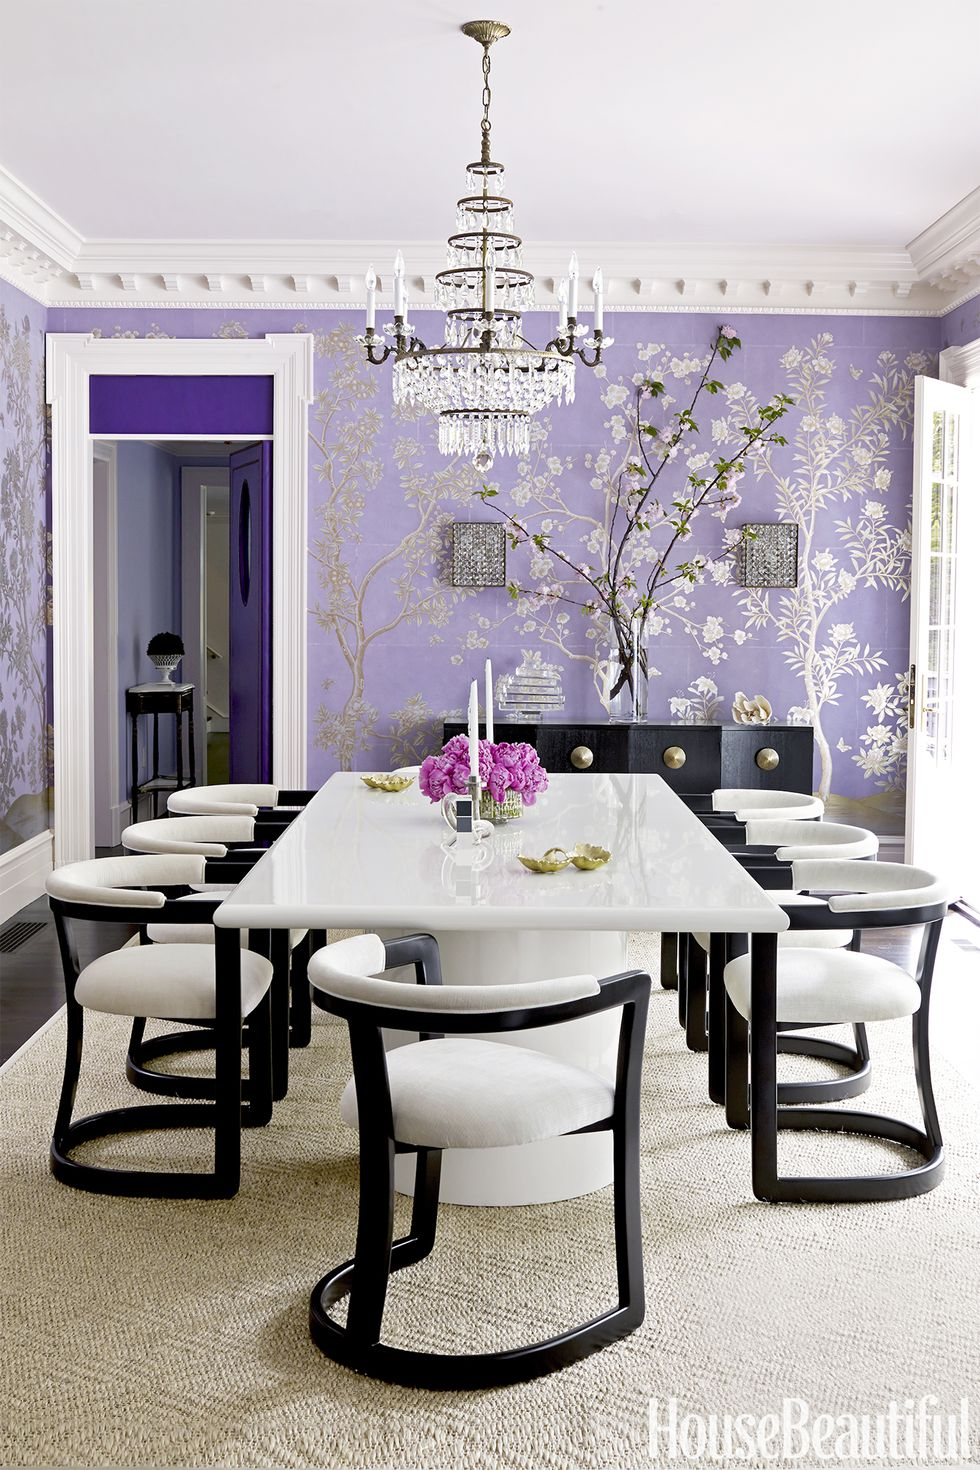 decorating ideas for living rooms with grey walls contemporary green room design 6 ways to use pantones color of the year 2018 - duke ...